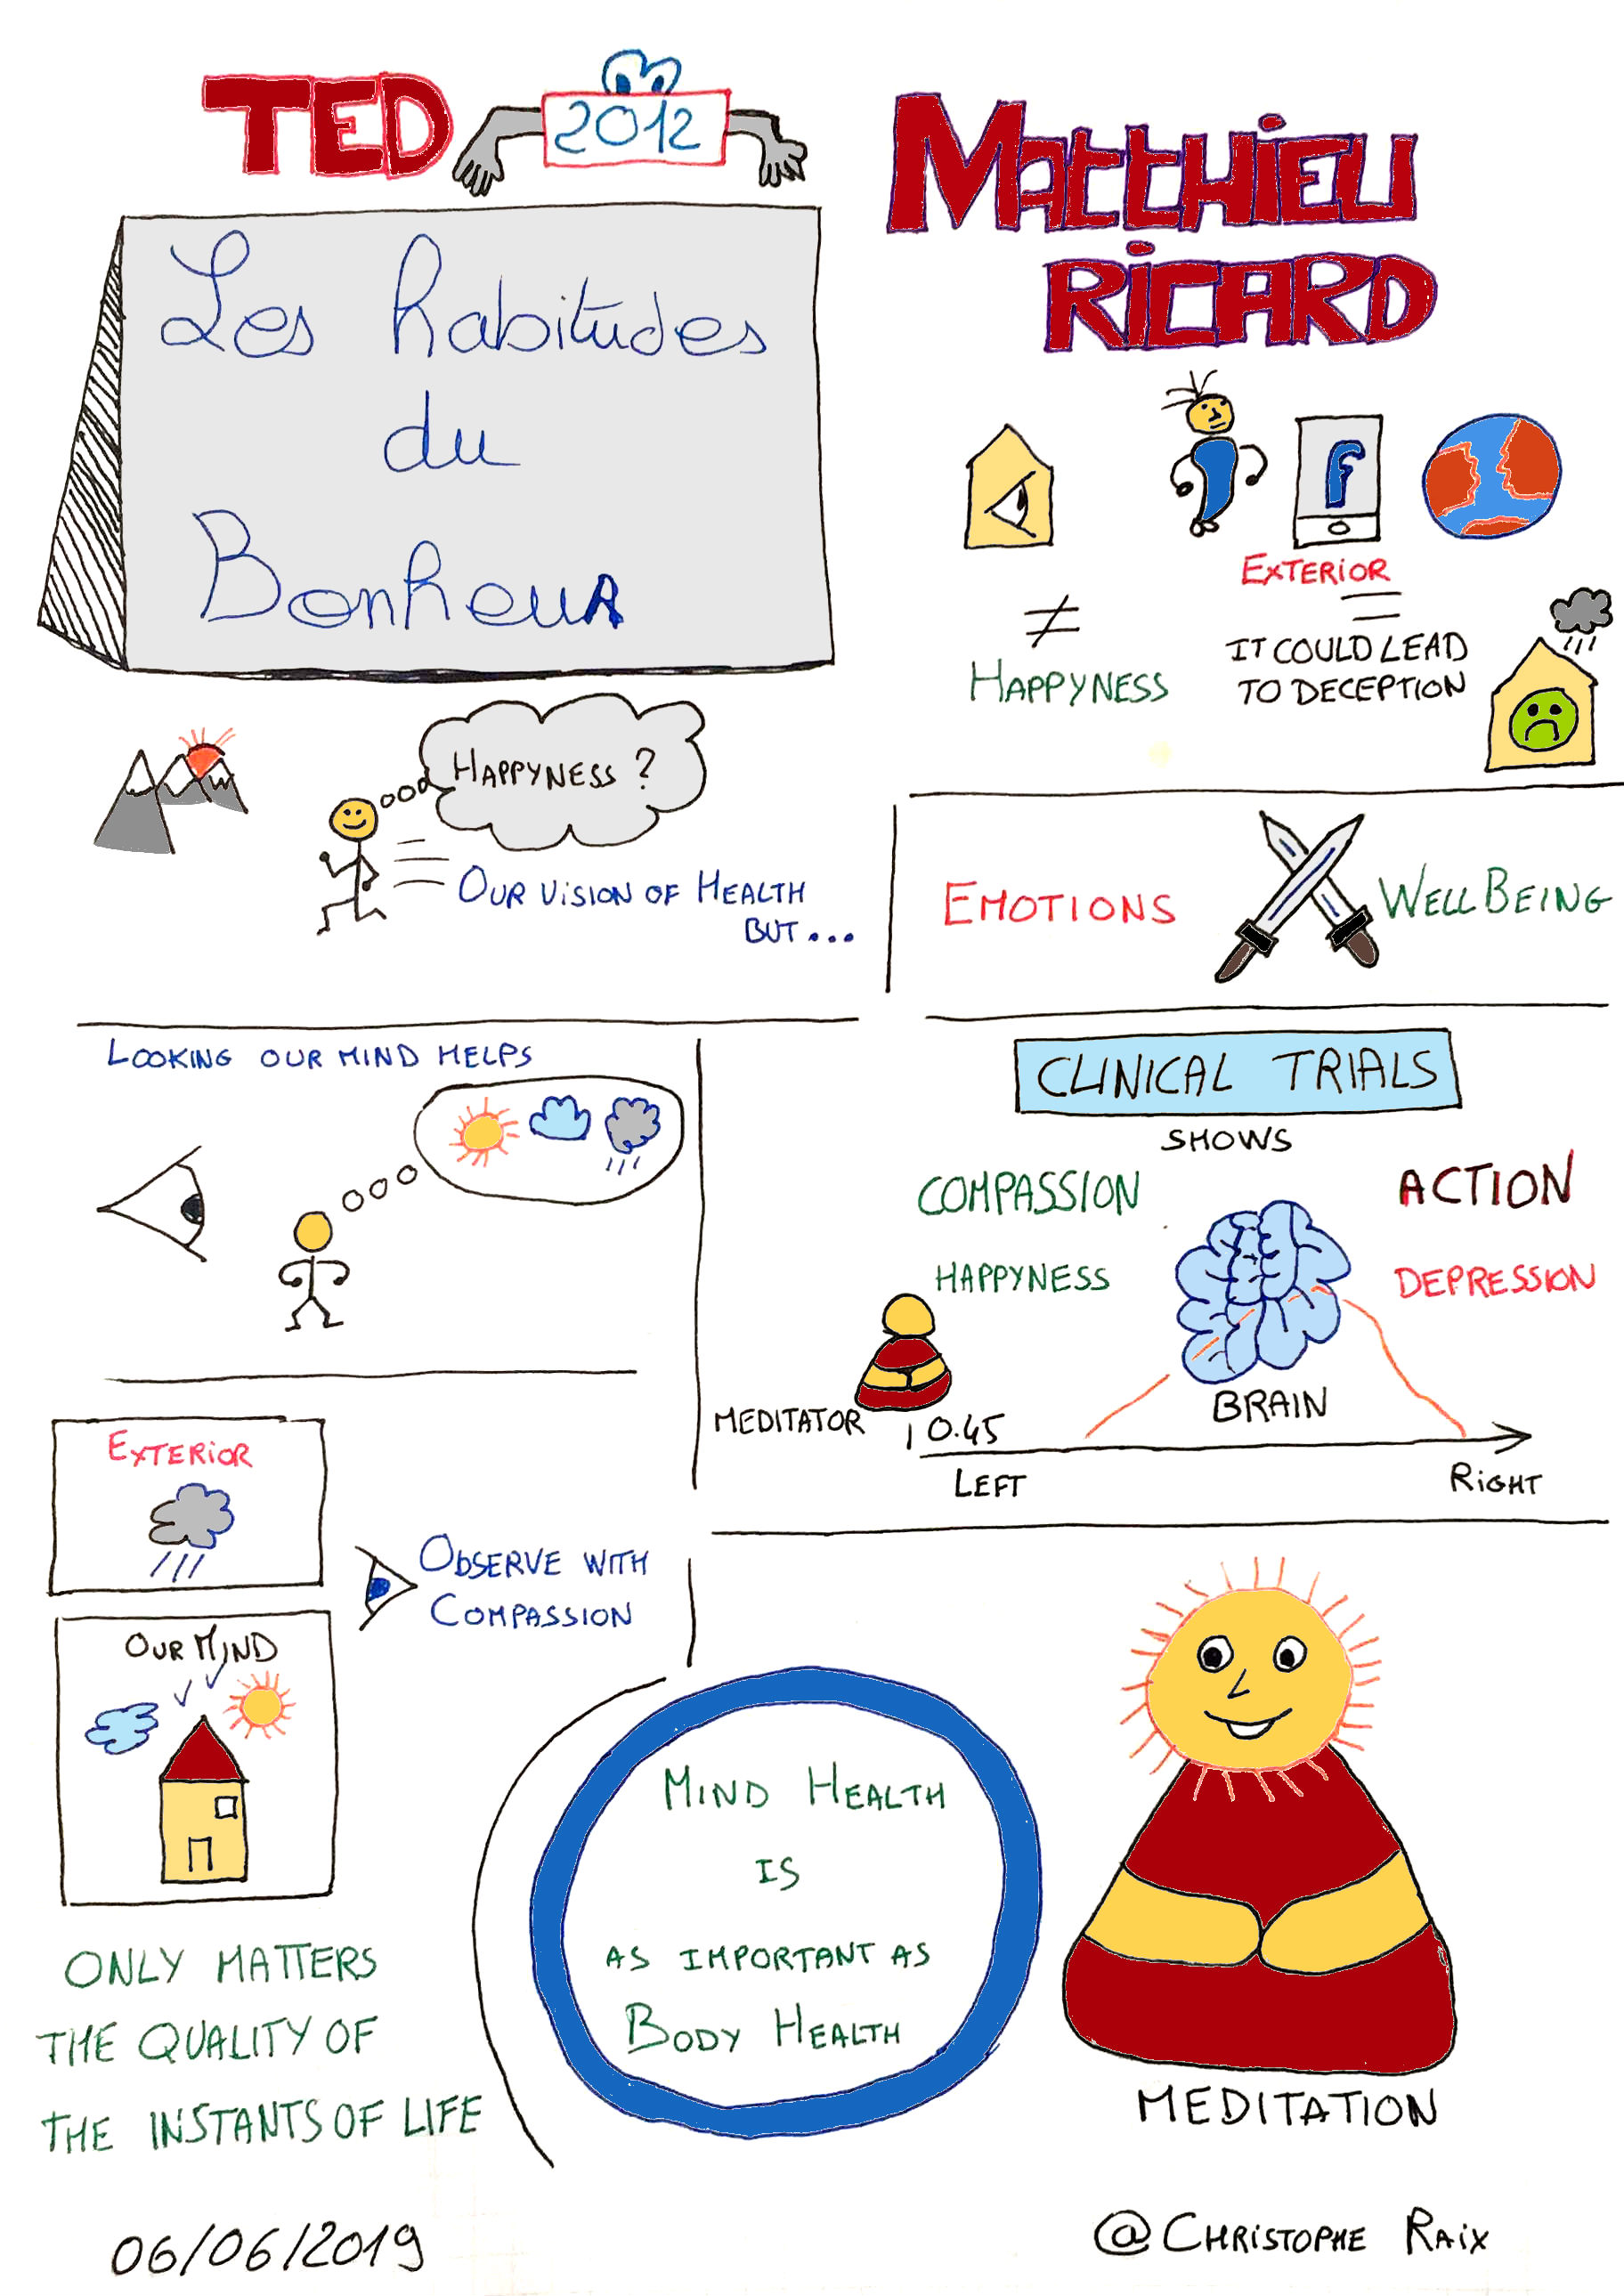 Sketchnote_MatthieuRicard_TED_CR